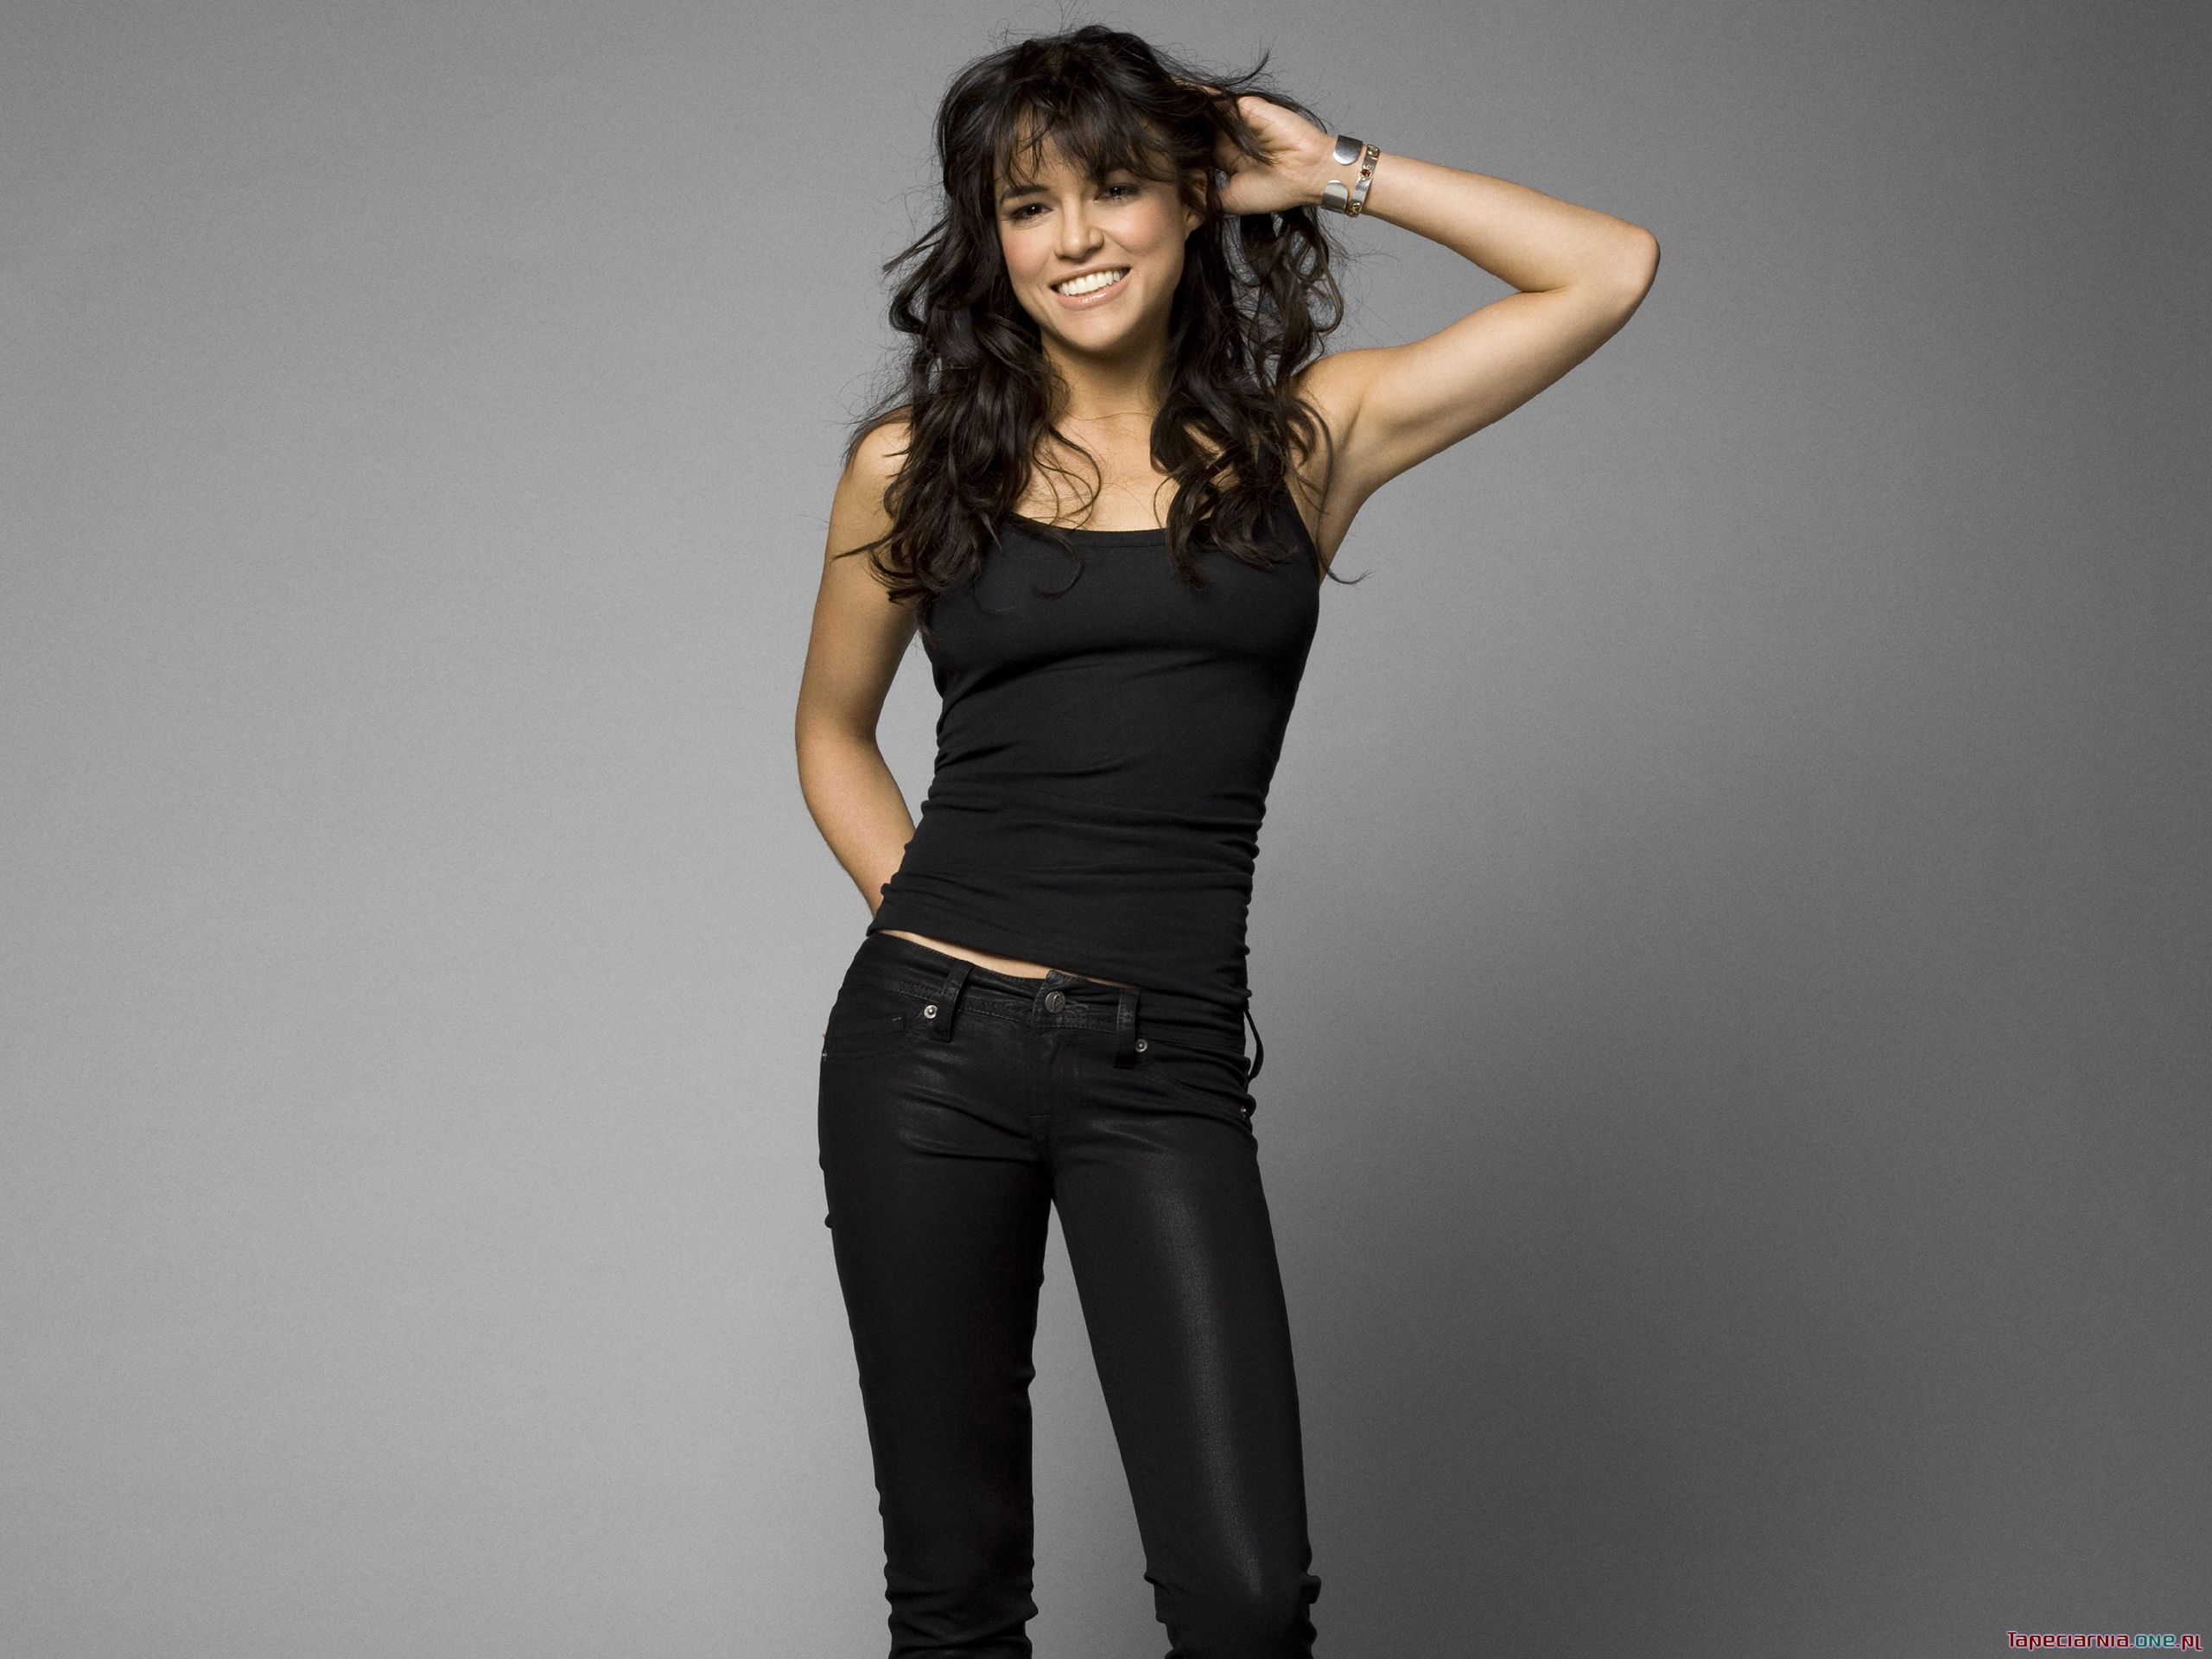 8 michelle rodriguez - hot women of san antonio (charles barkley)